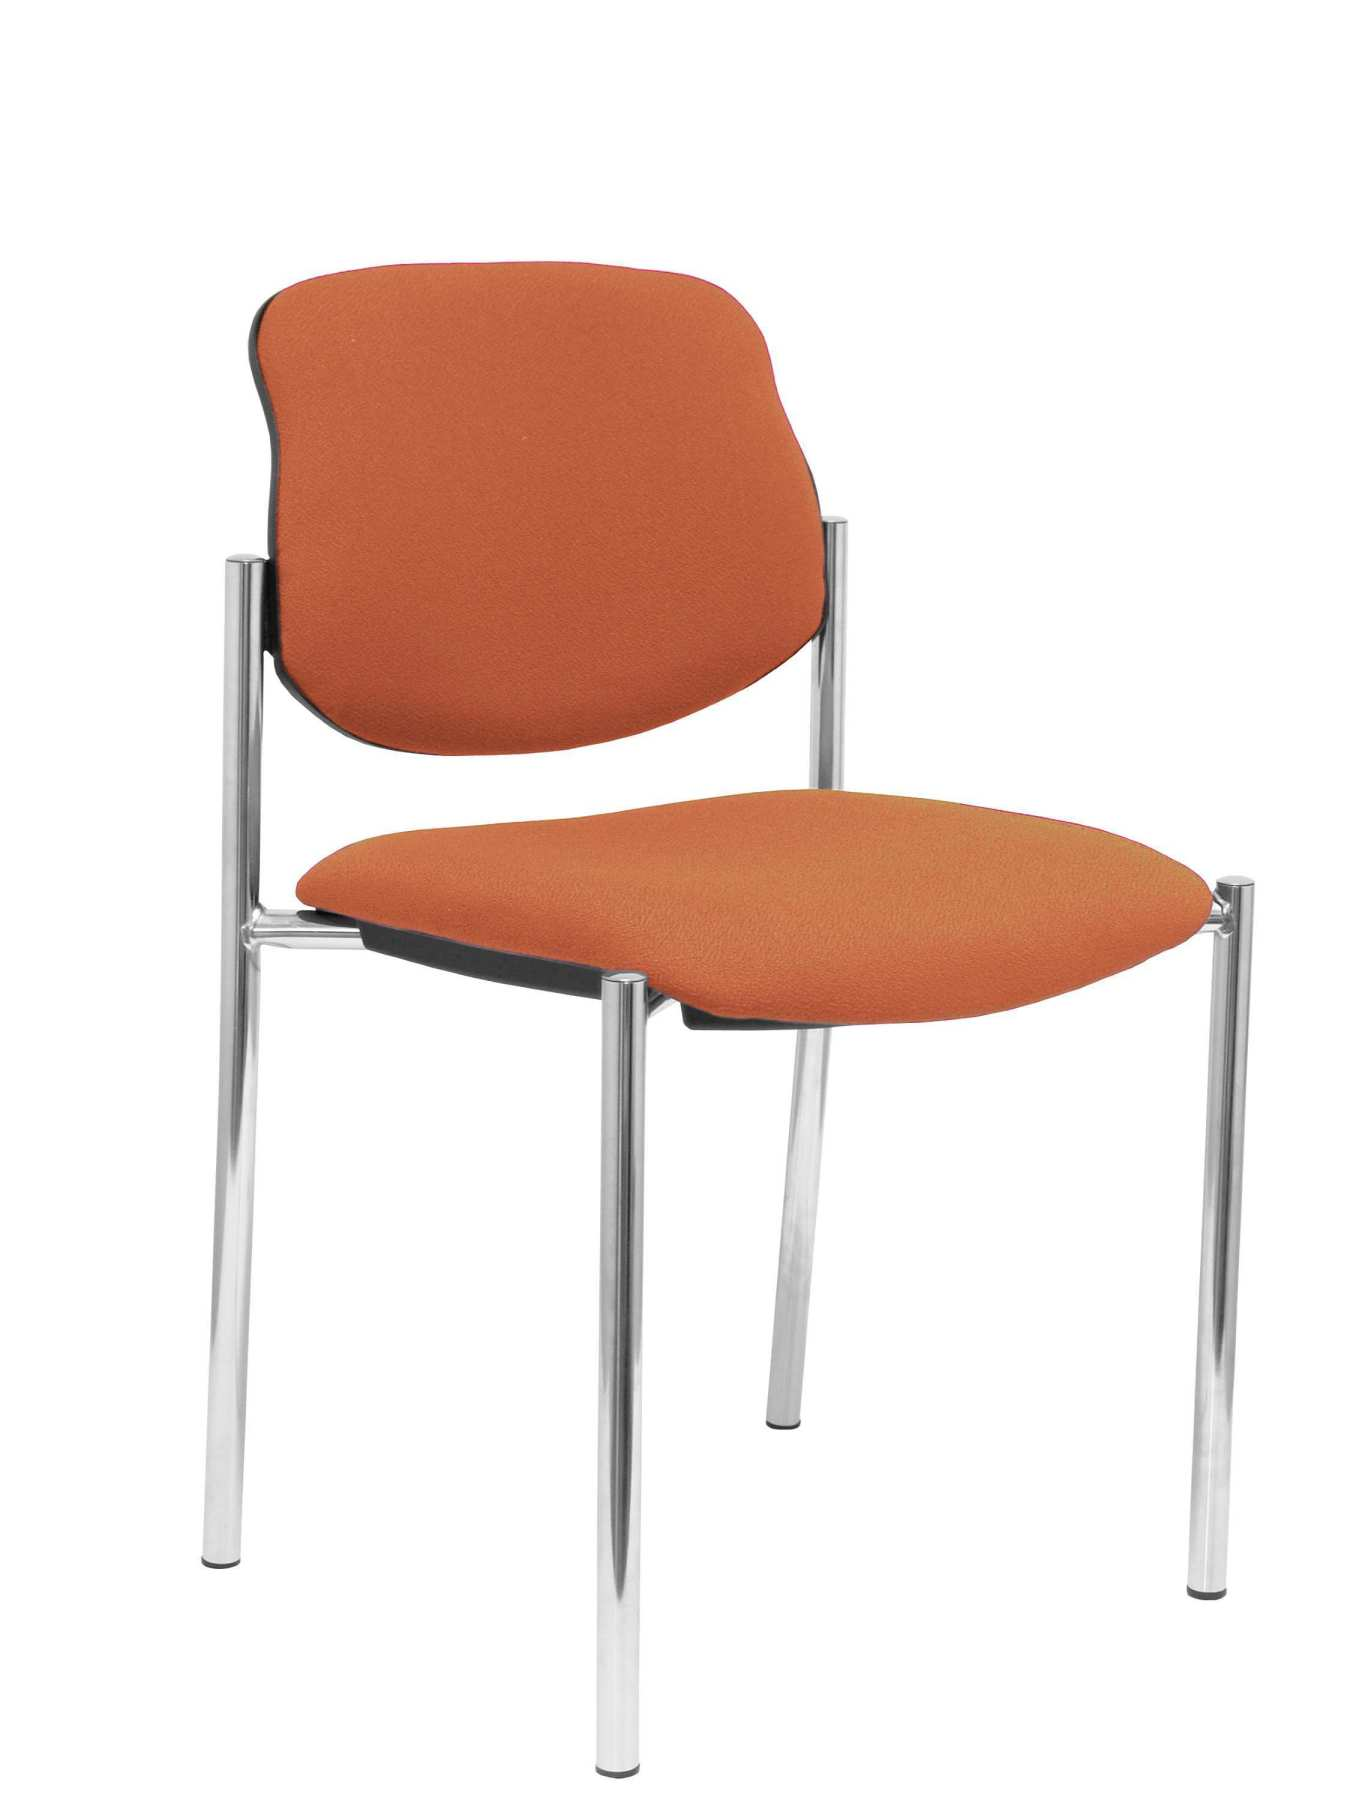 Confident Chair 4-leg And Estructrua Chrome Seat And Back Upholstered In Fabric BALI Brown PIQUERAS And